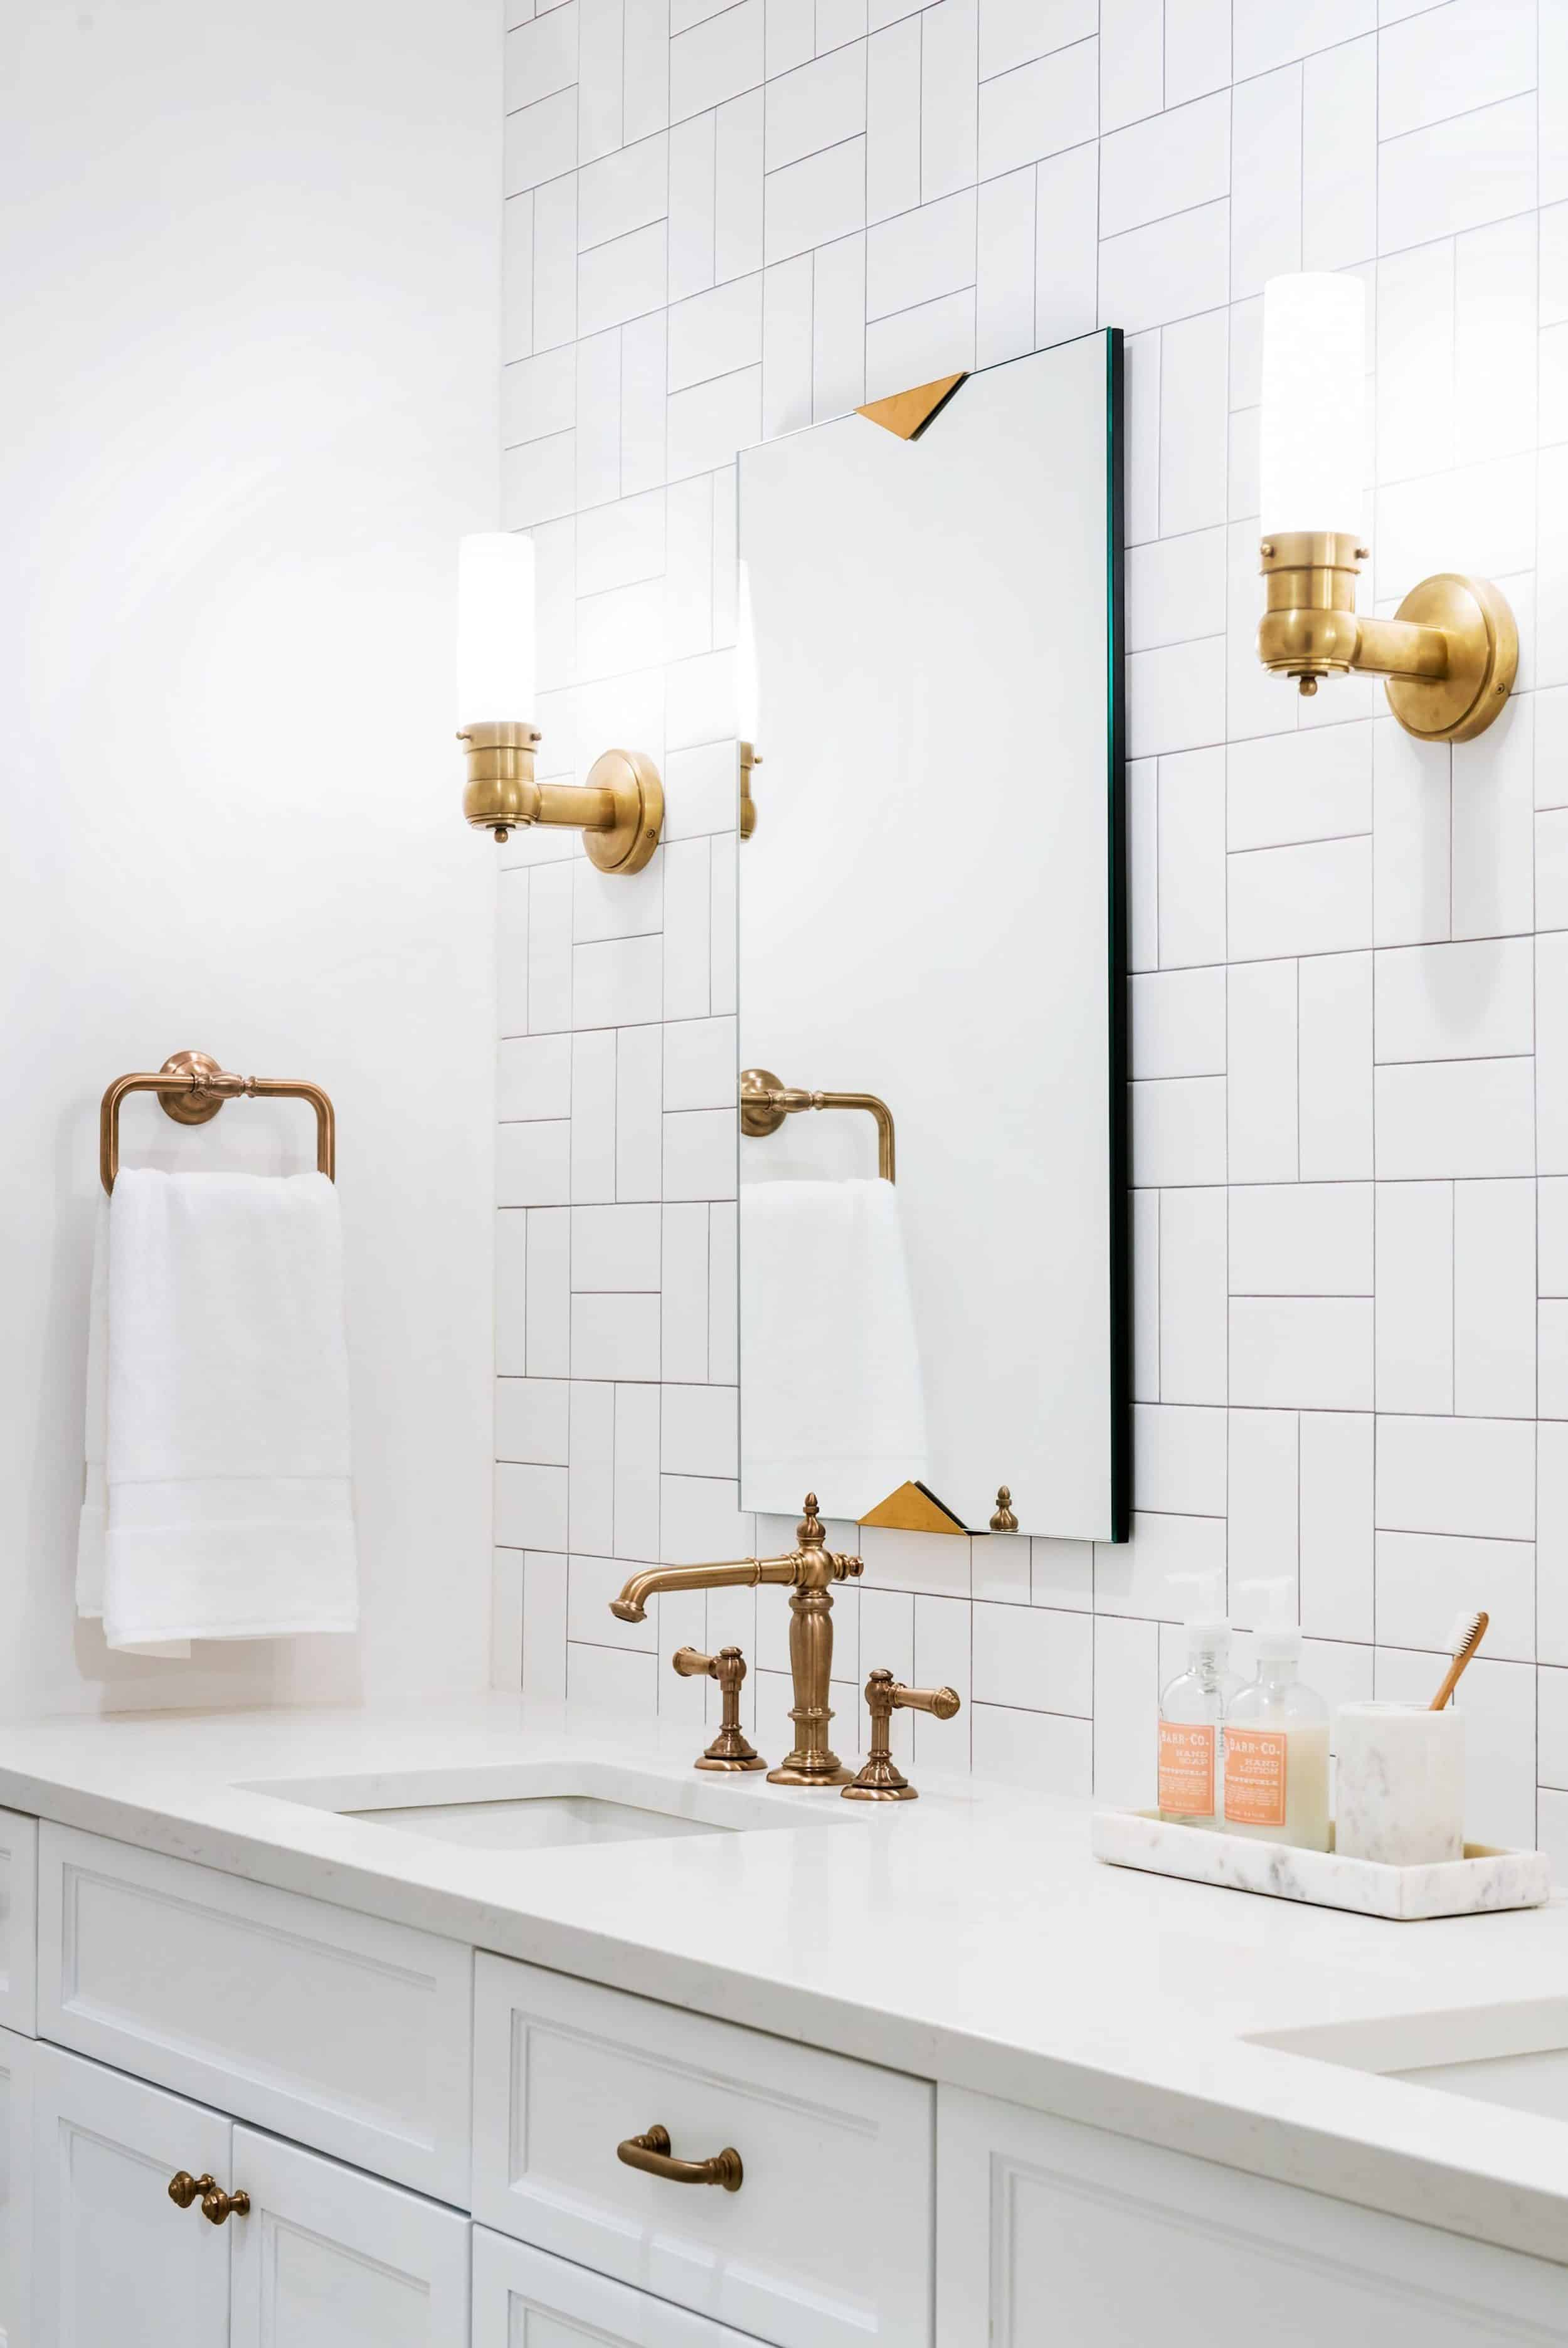 Home Design Subway Tile Patterns Take The Ever Lovely Economical And Turn It On S Head Literally Here Basketweave Pattern Shines F 59